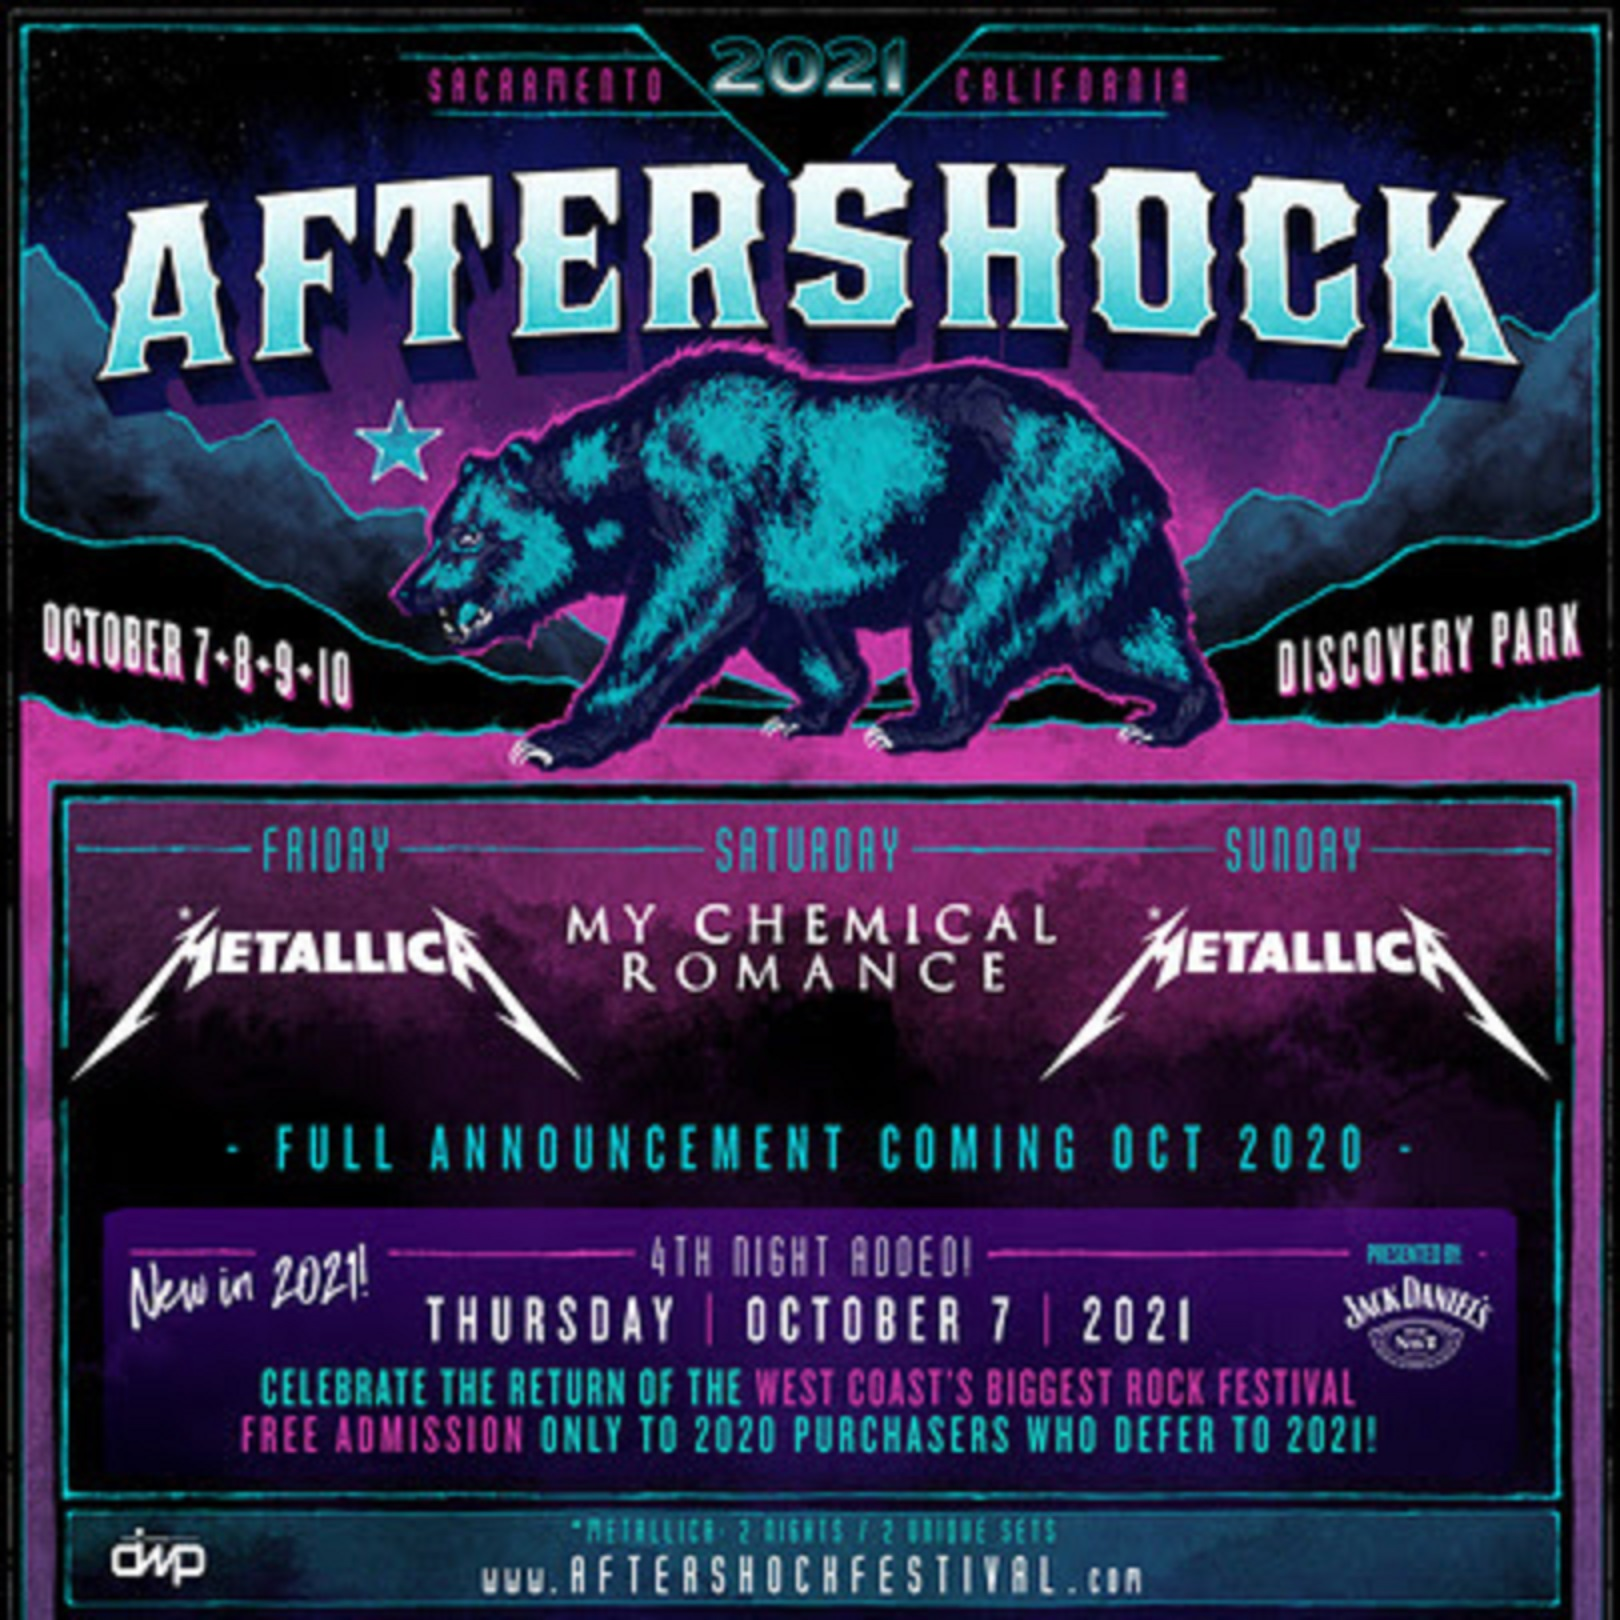 Aftershock Festival Rescheduled To October 7 - 10, 2021